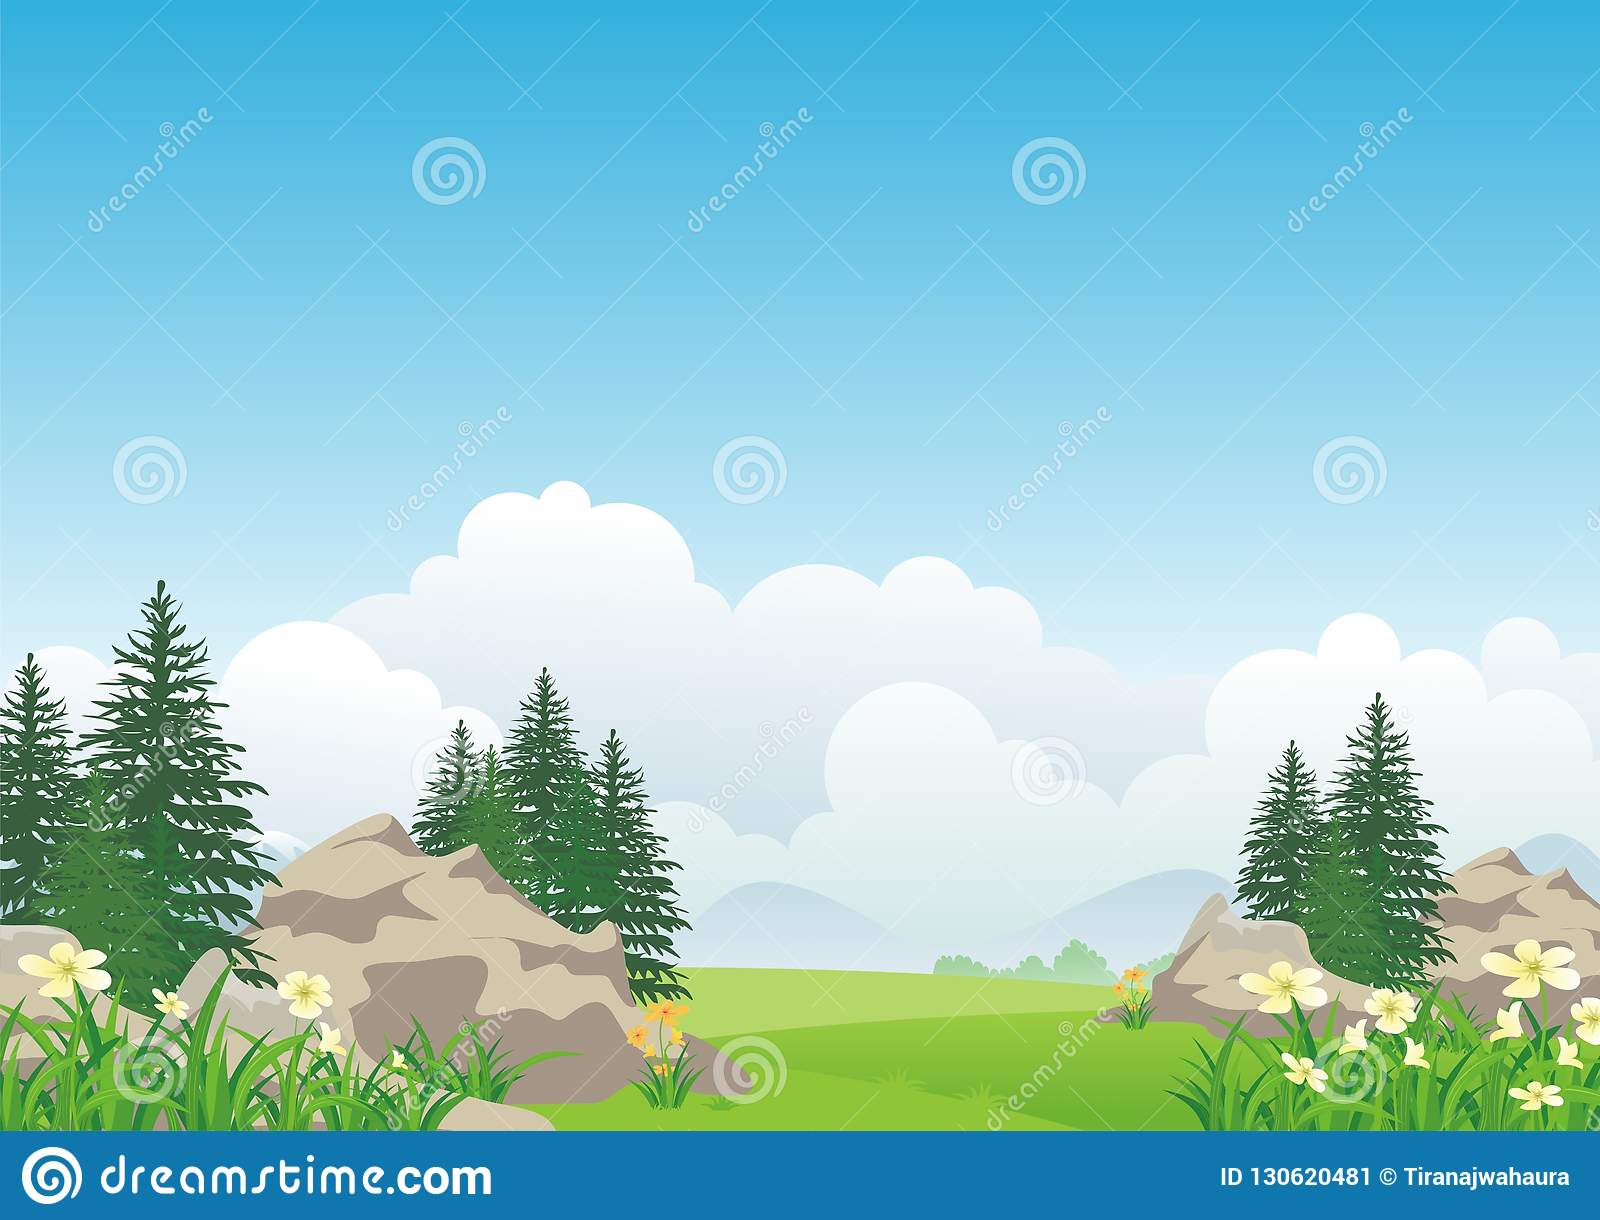 Landscape with rocky hill, Lovely and cute scenery cartoon design.